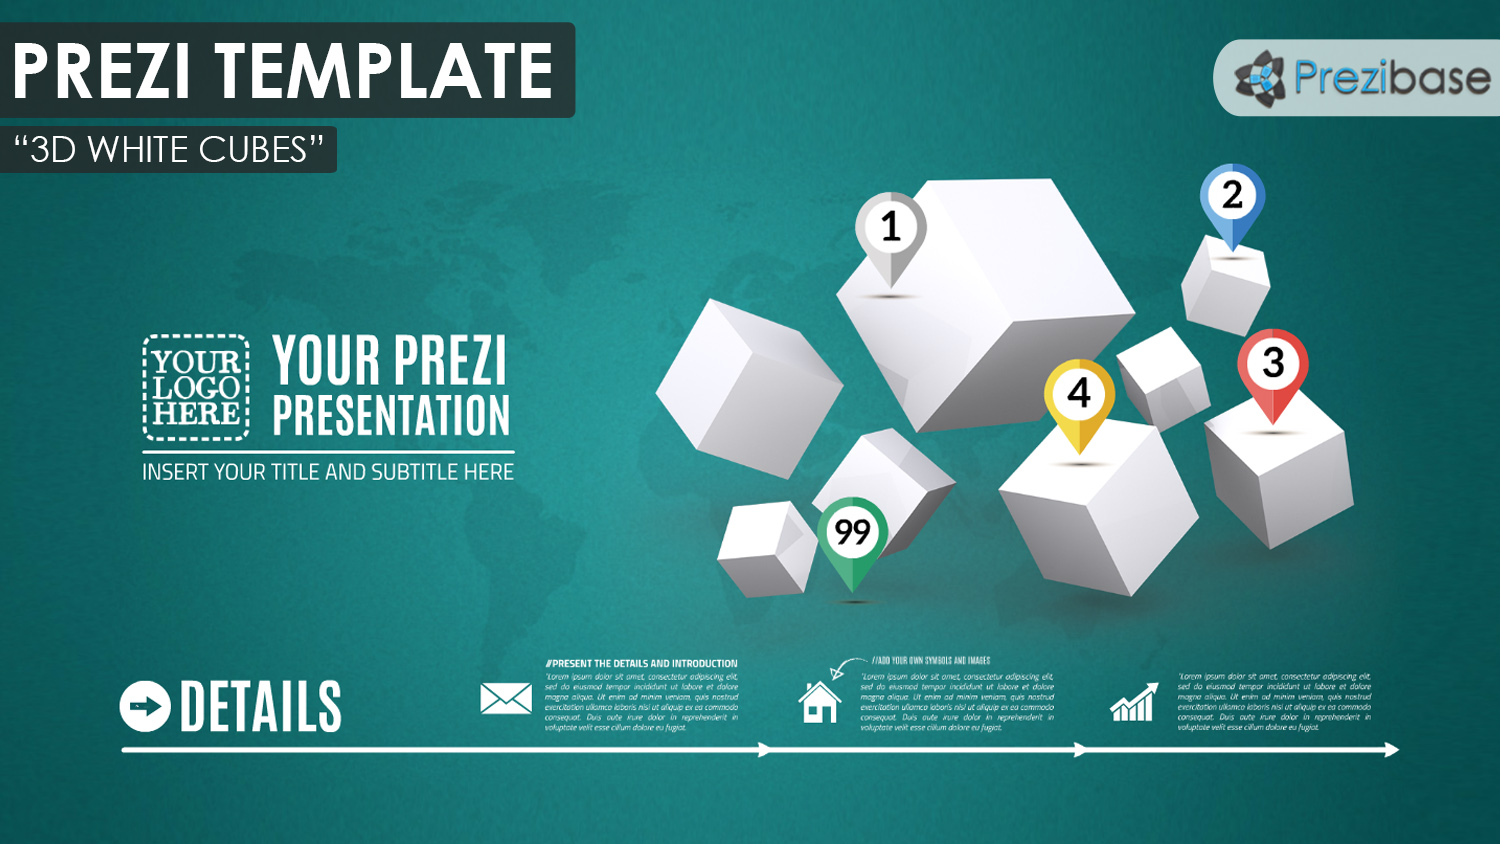 Business prezi templates prezibase 3d white cubes squares infographic business prezi template cheaphphosting